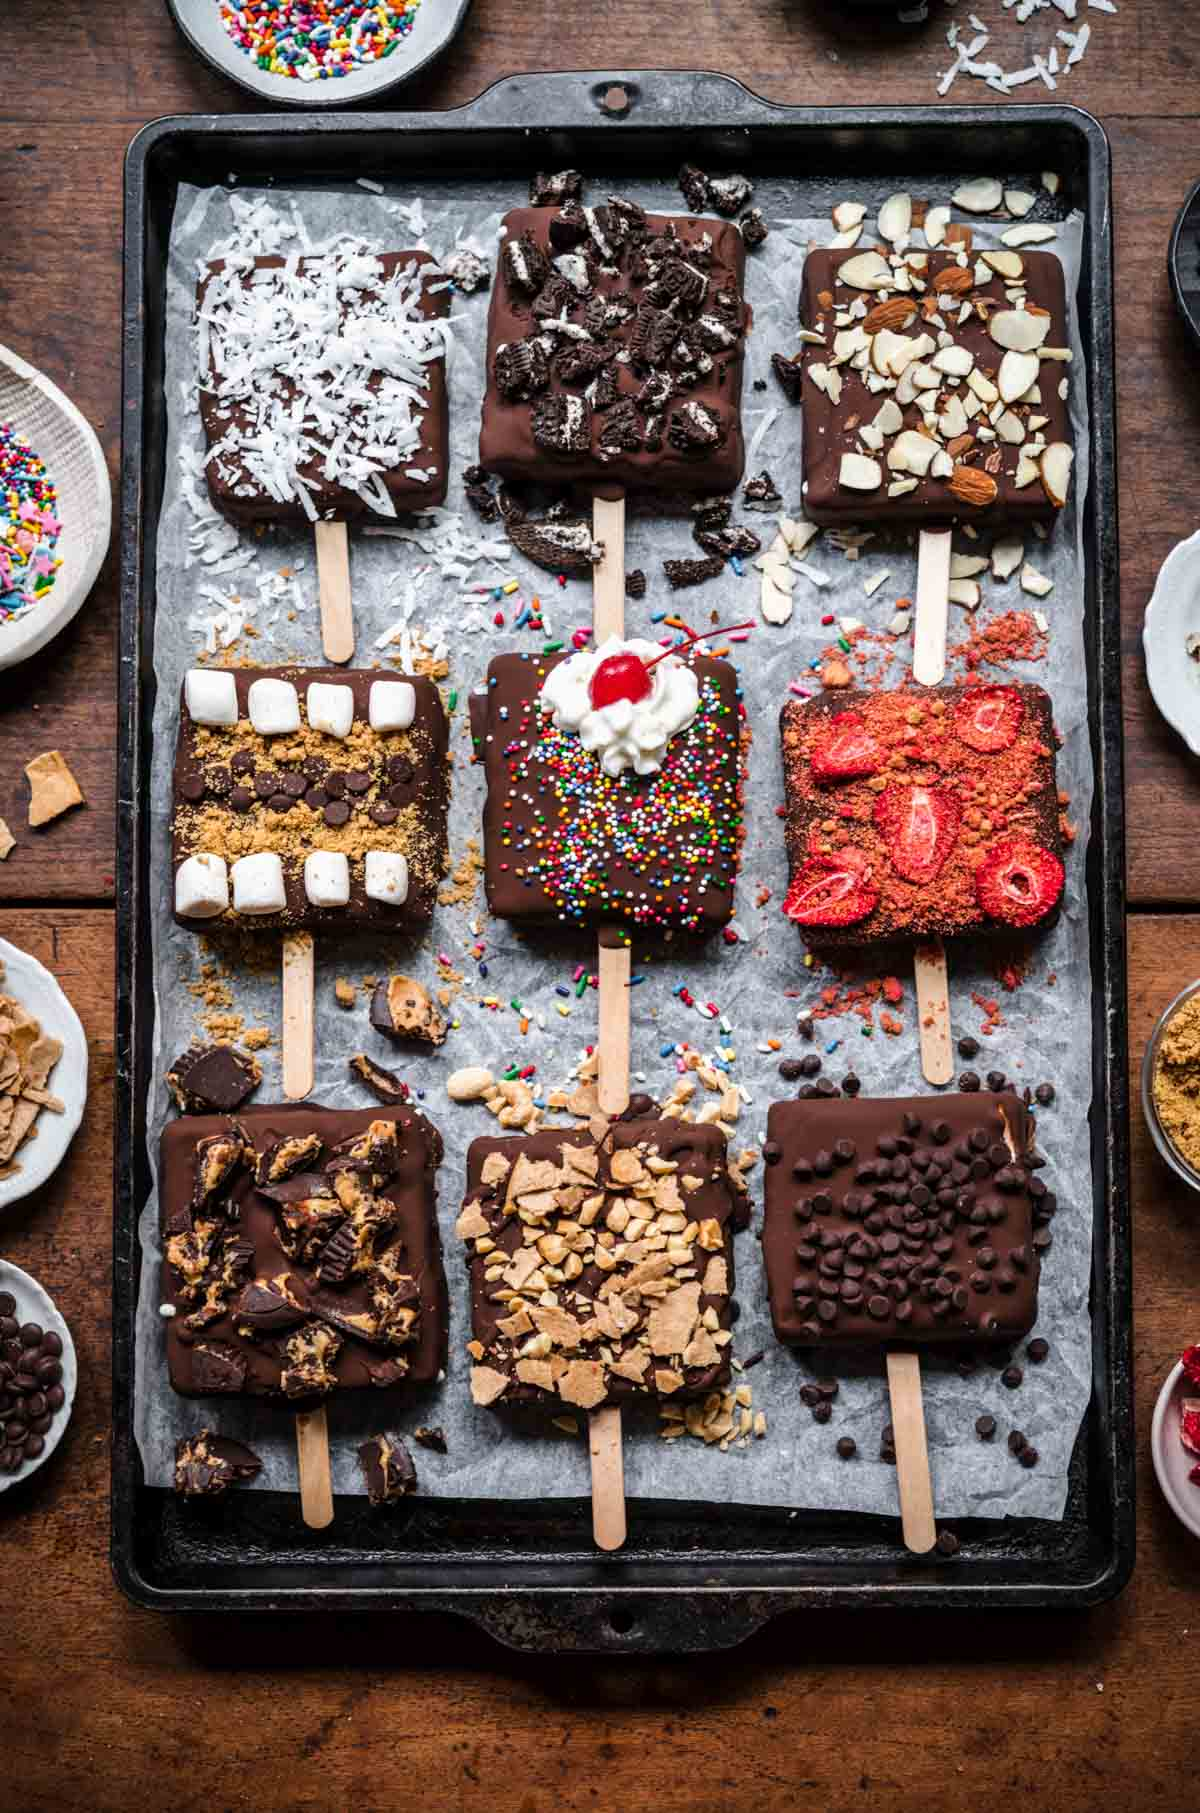 overhead view of vegan ice cream bars with various toppings on a sheet pan.